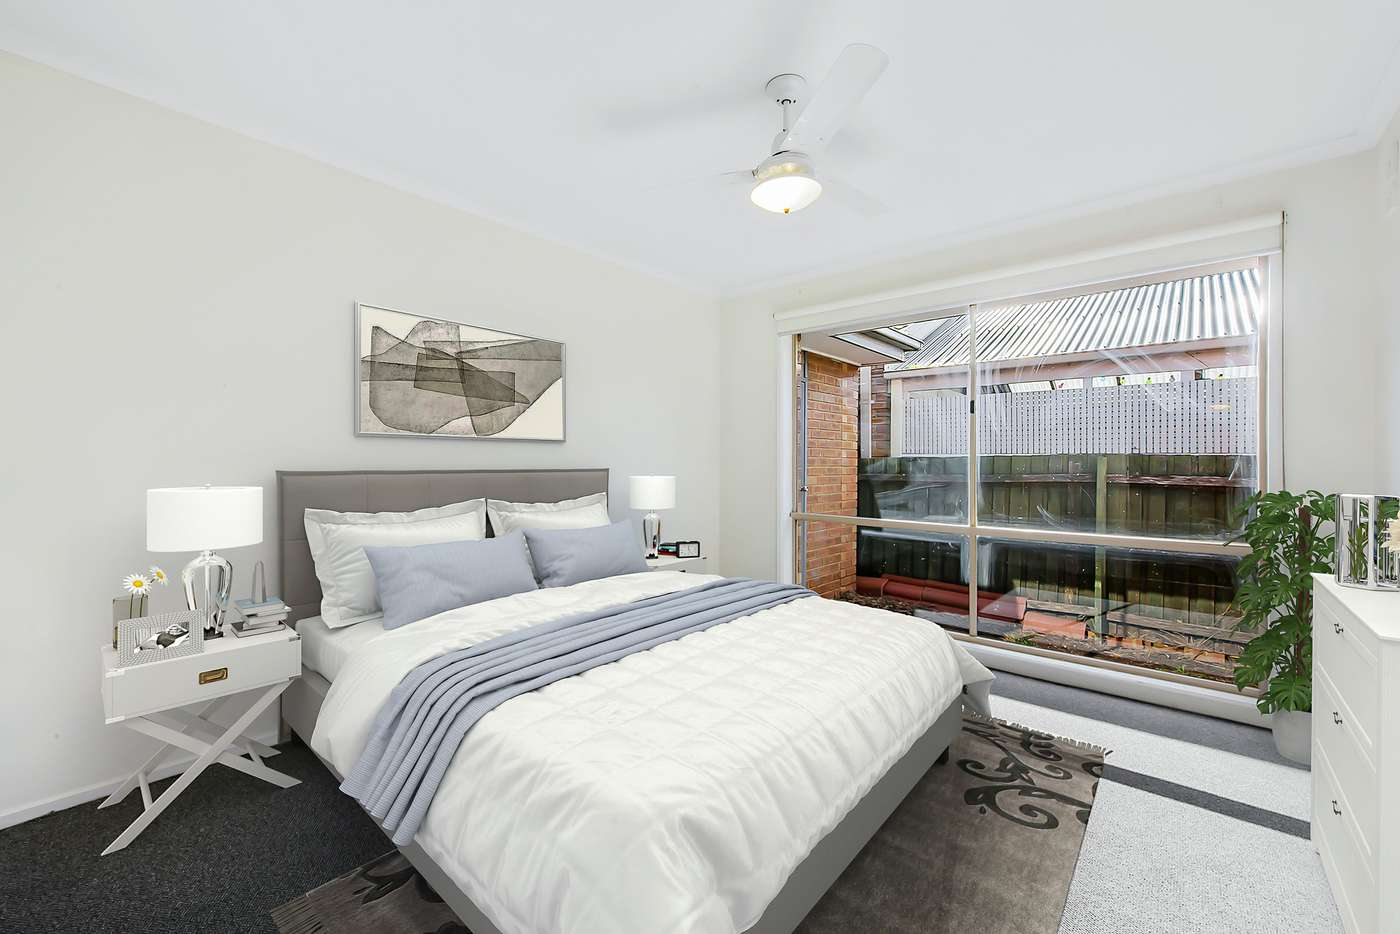 Sixth view of Homely house listing, 12 Cobb Junction, Sydenham VIC 3037